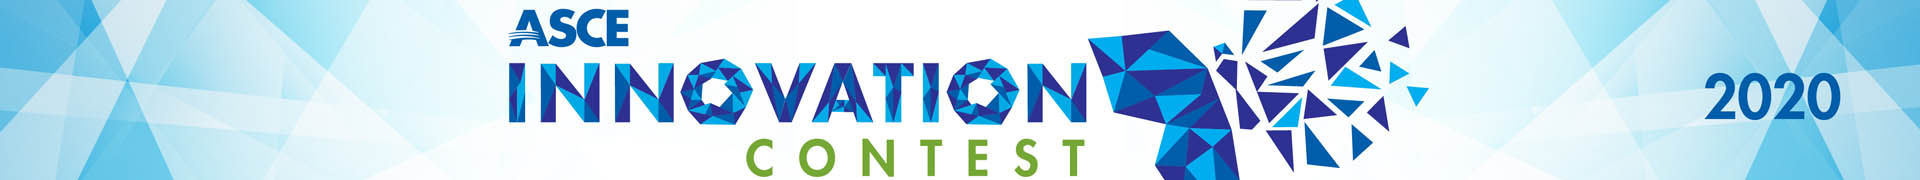 2020 ASCE Innovation Contest Event Banner